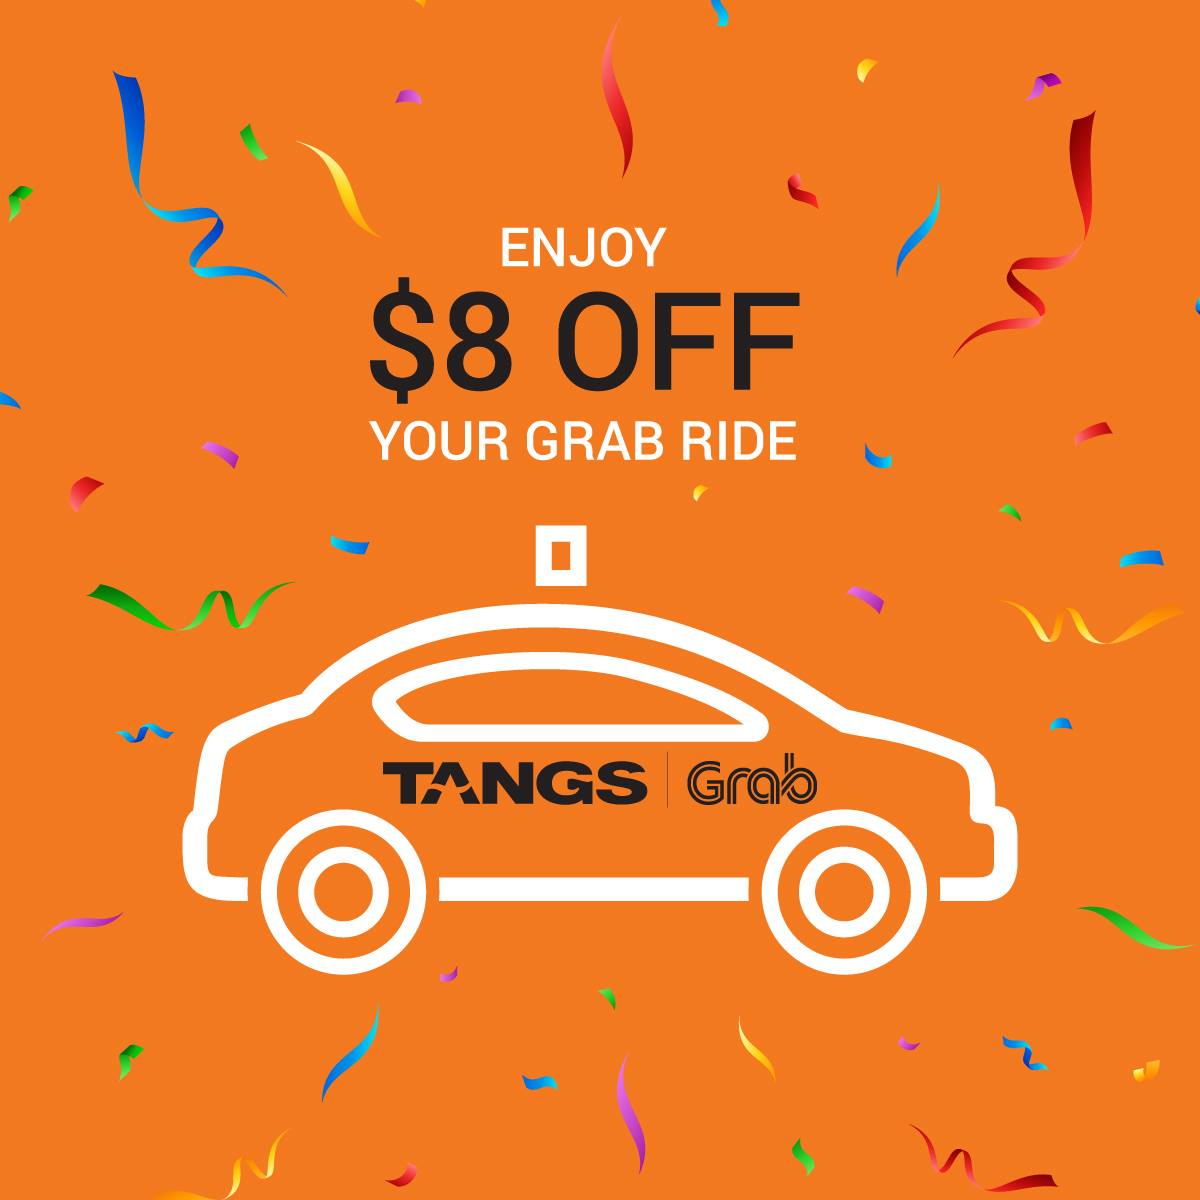 TANGS Singapore Sign Up as a TANGS Member & Enjoy $8 Off Next Grab Ride Promotion While Vouchers Last | Why Not Deals & Promotions